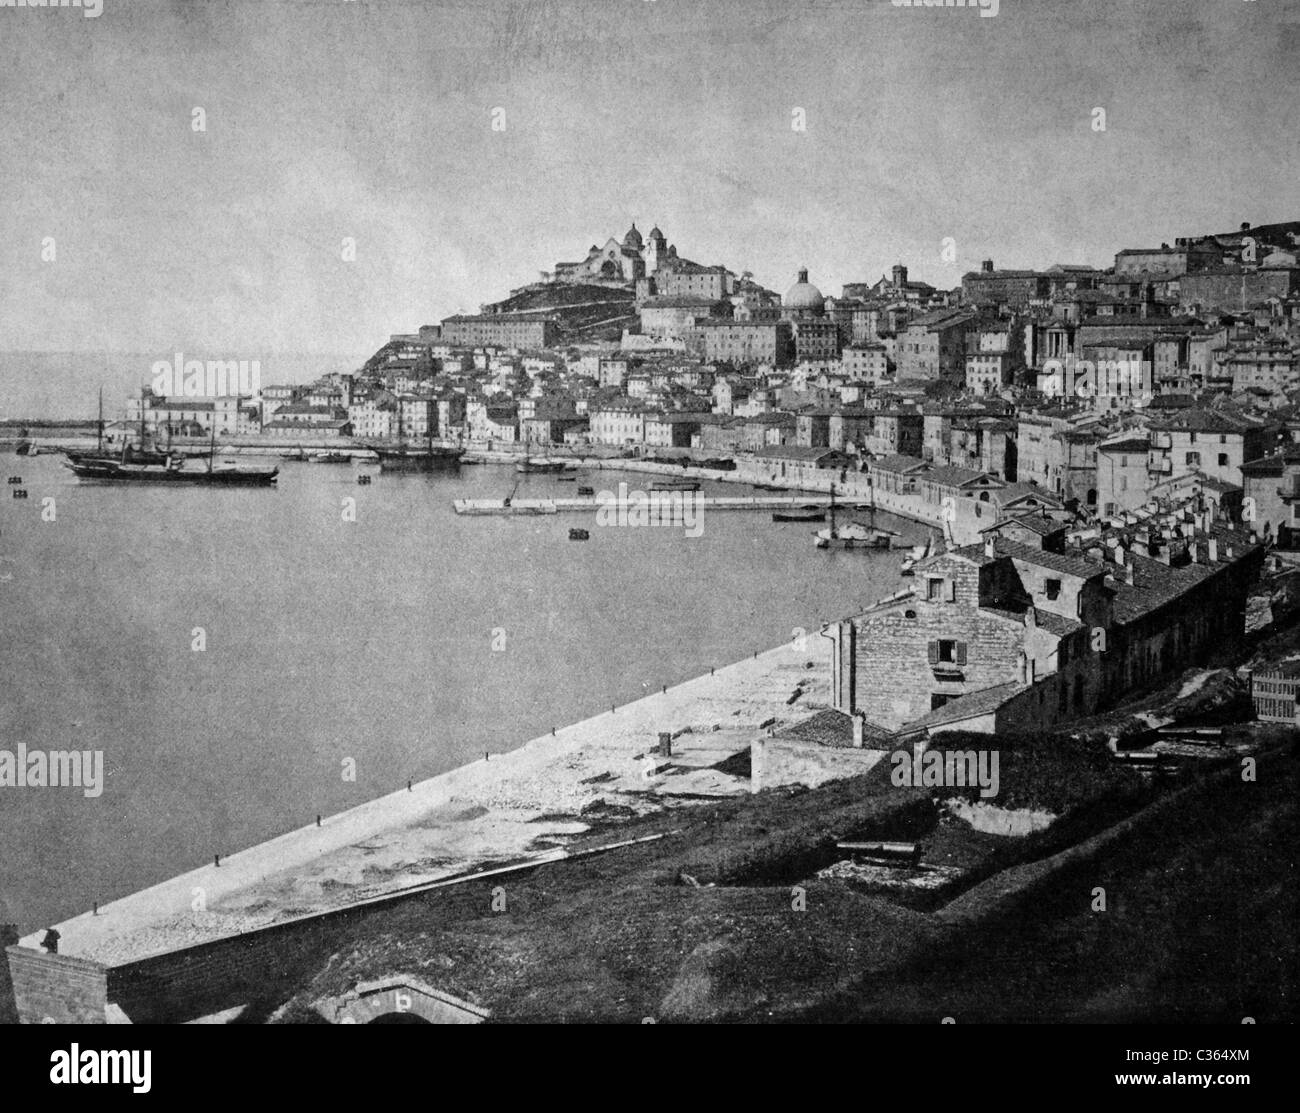 One of the first autotypes of Ancona, Italy, historical photograph, 1884 - Stock Image